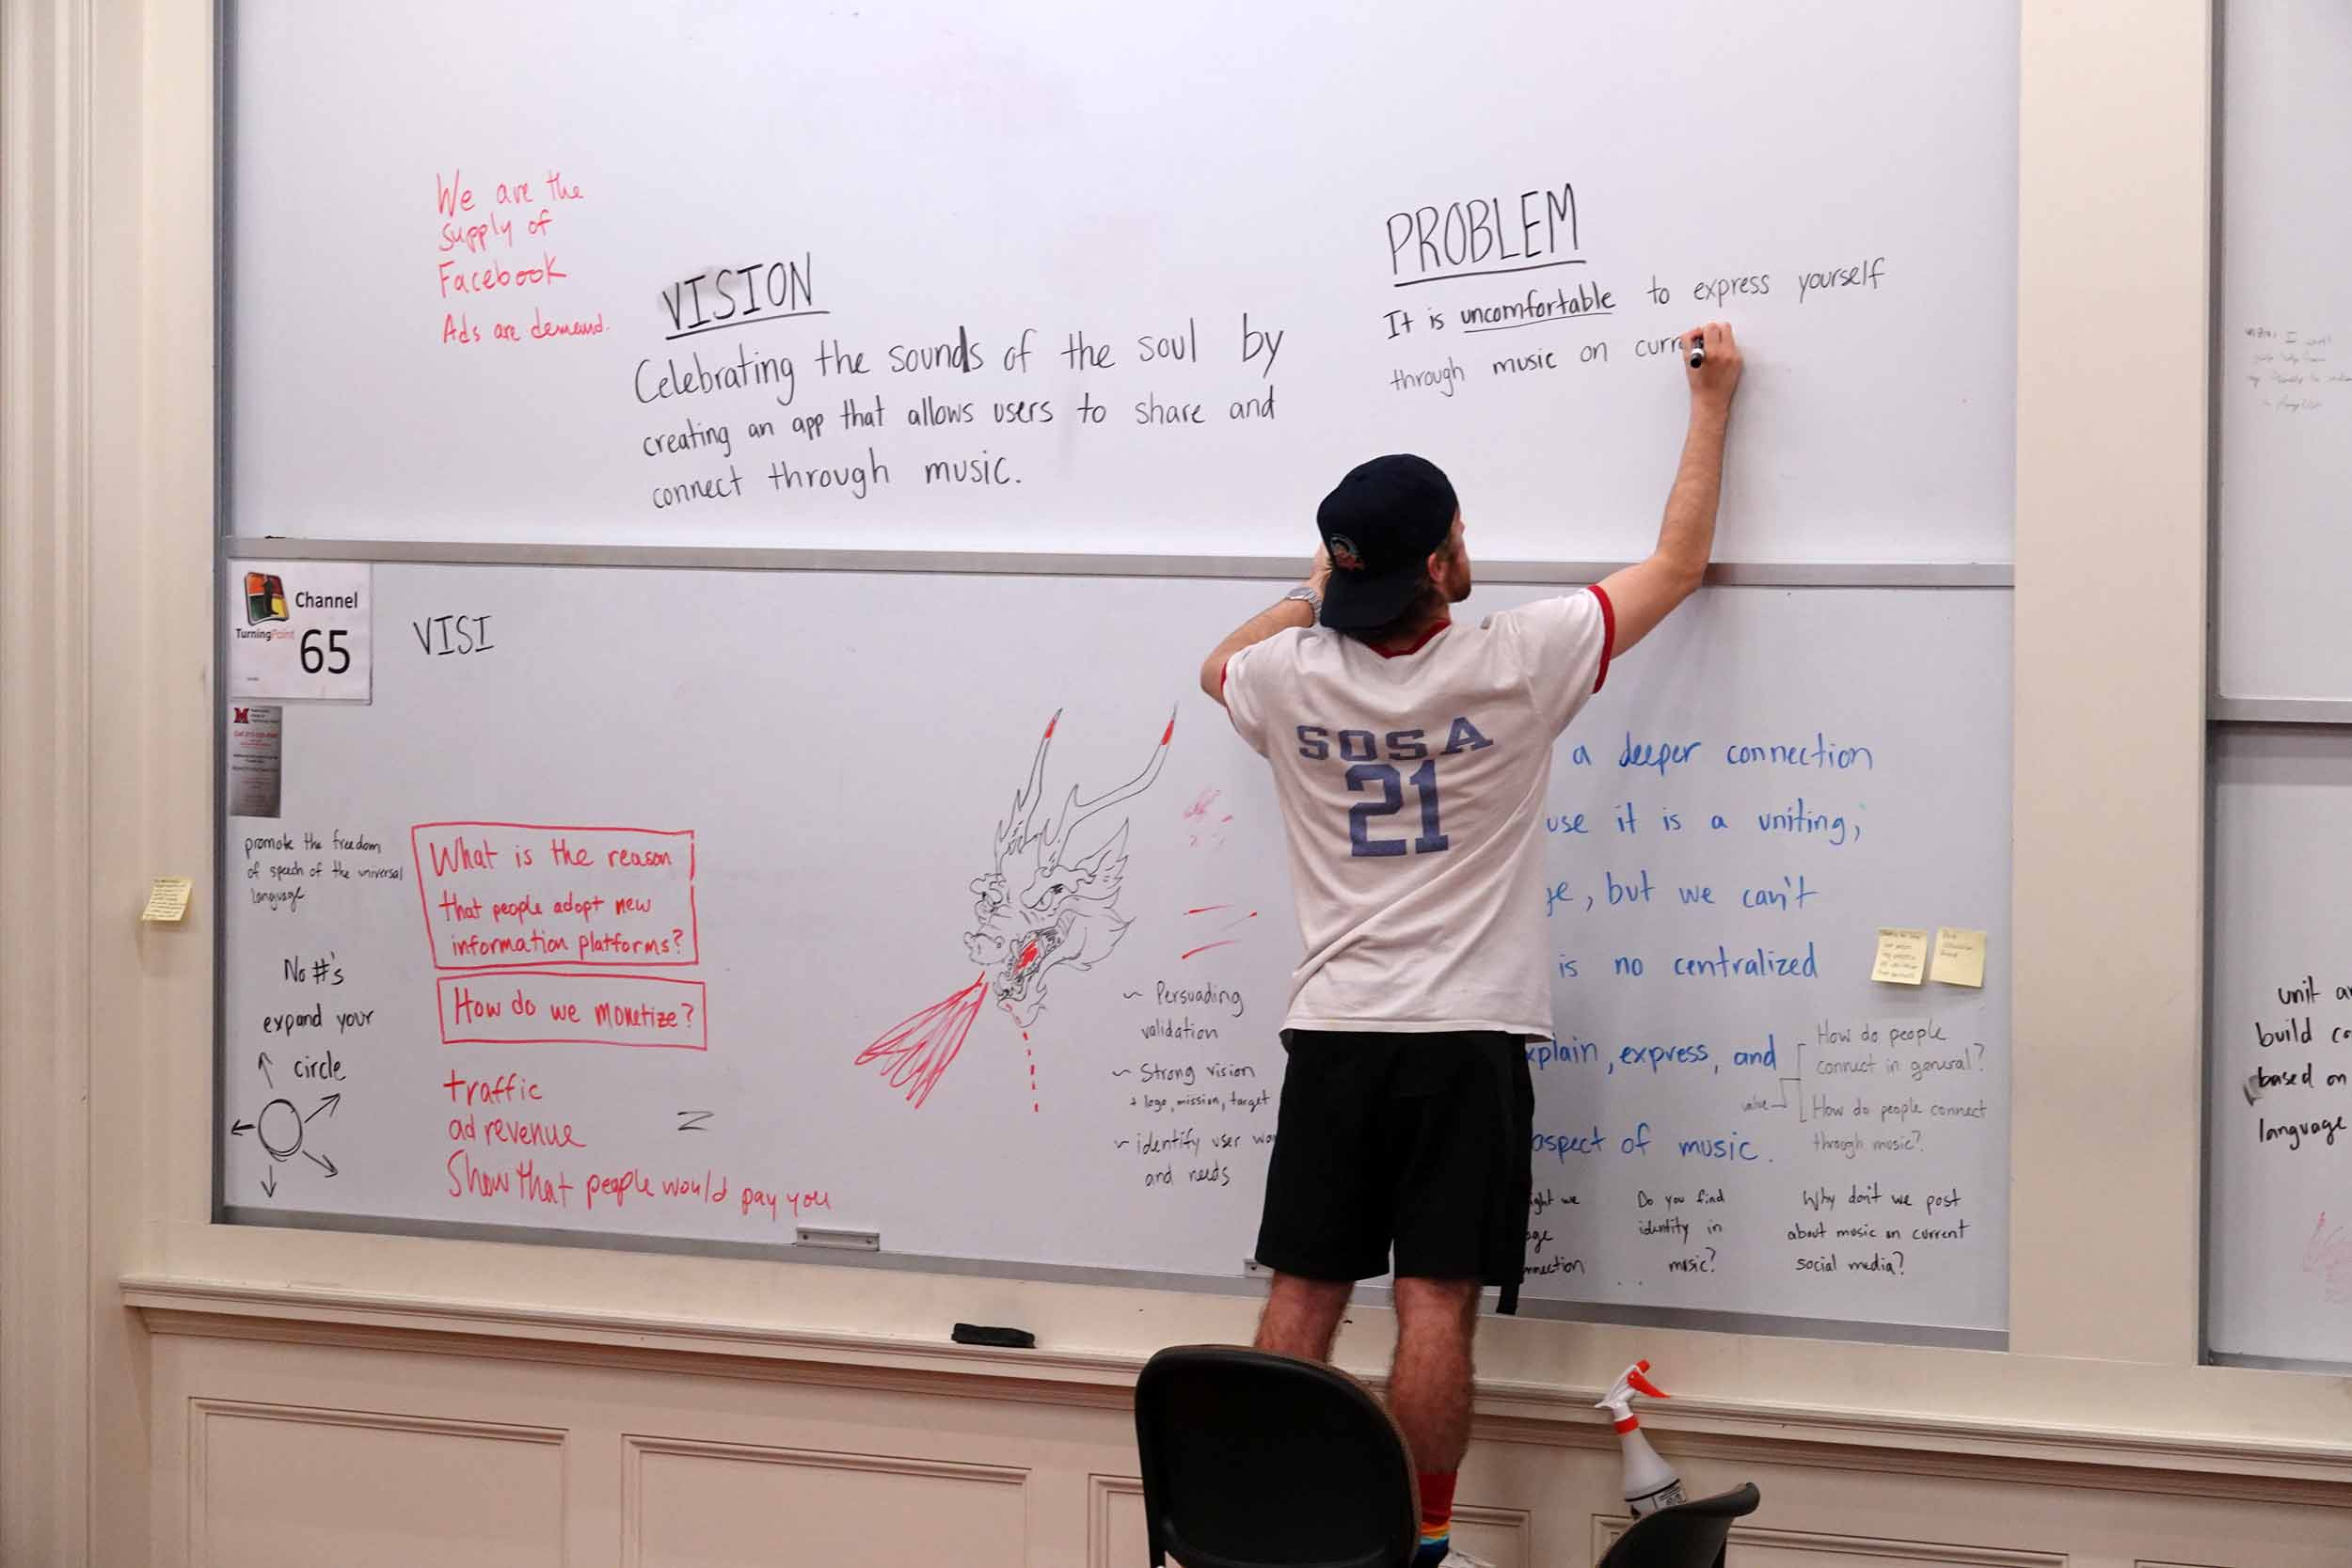 Student works out ideas on a whiteboard